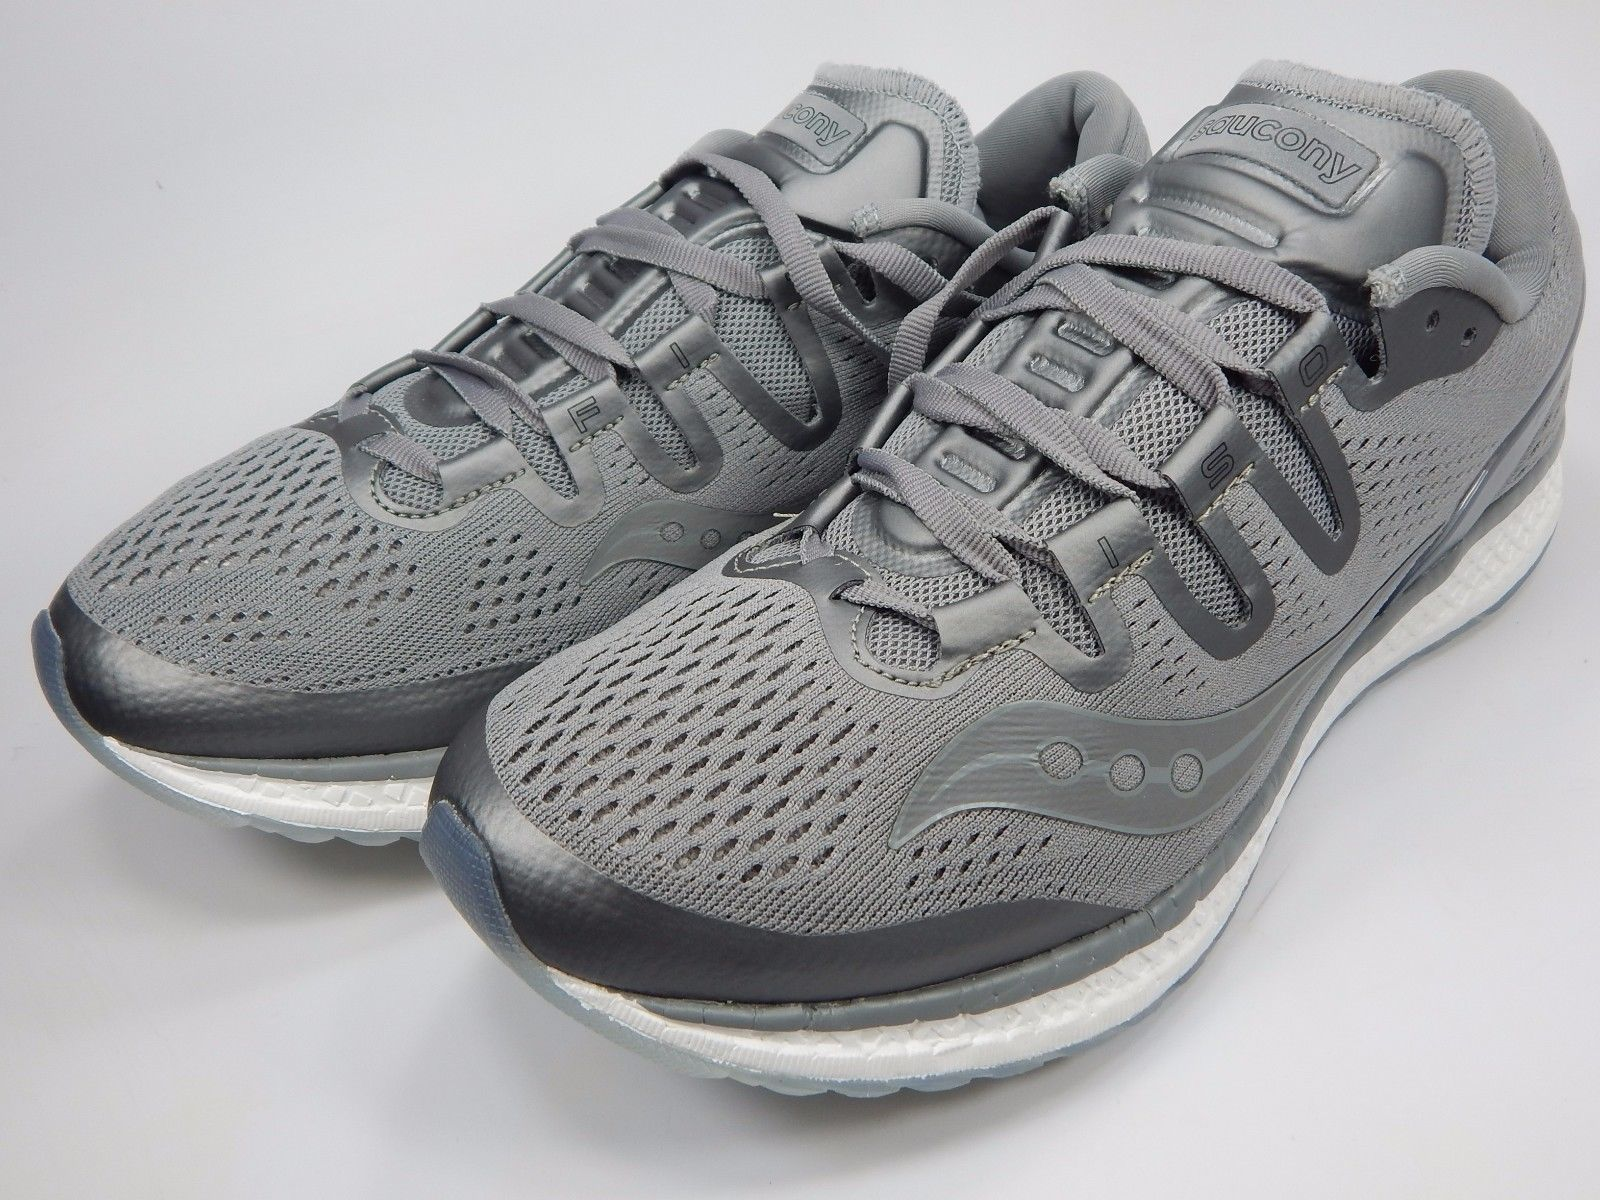 Saucony Freedom ISO Men's Running Shoes Size US 9 M (D) EU 42.5 Grey S20355-51